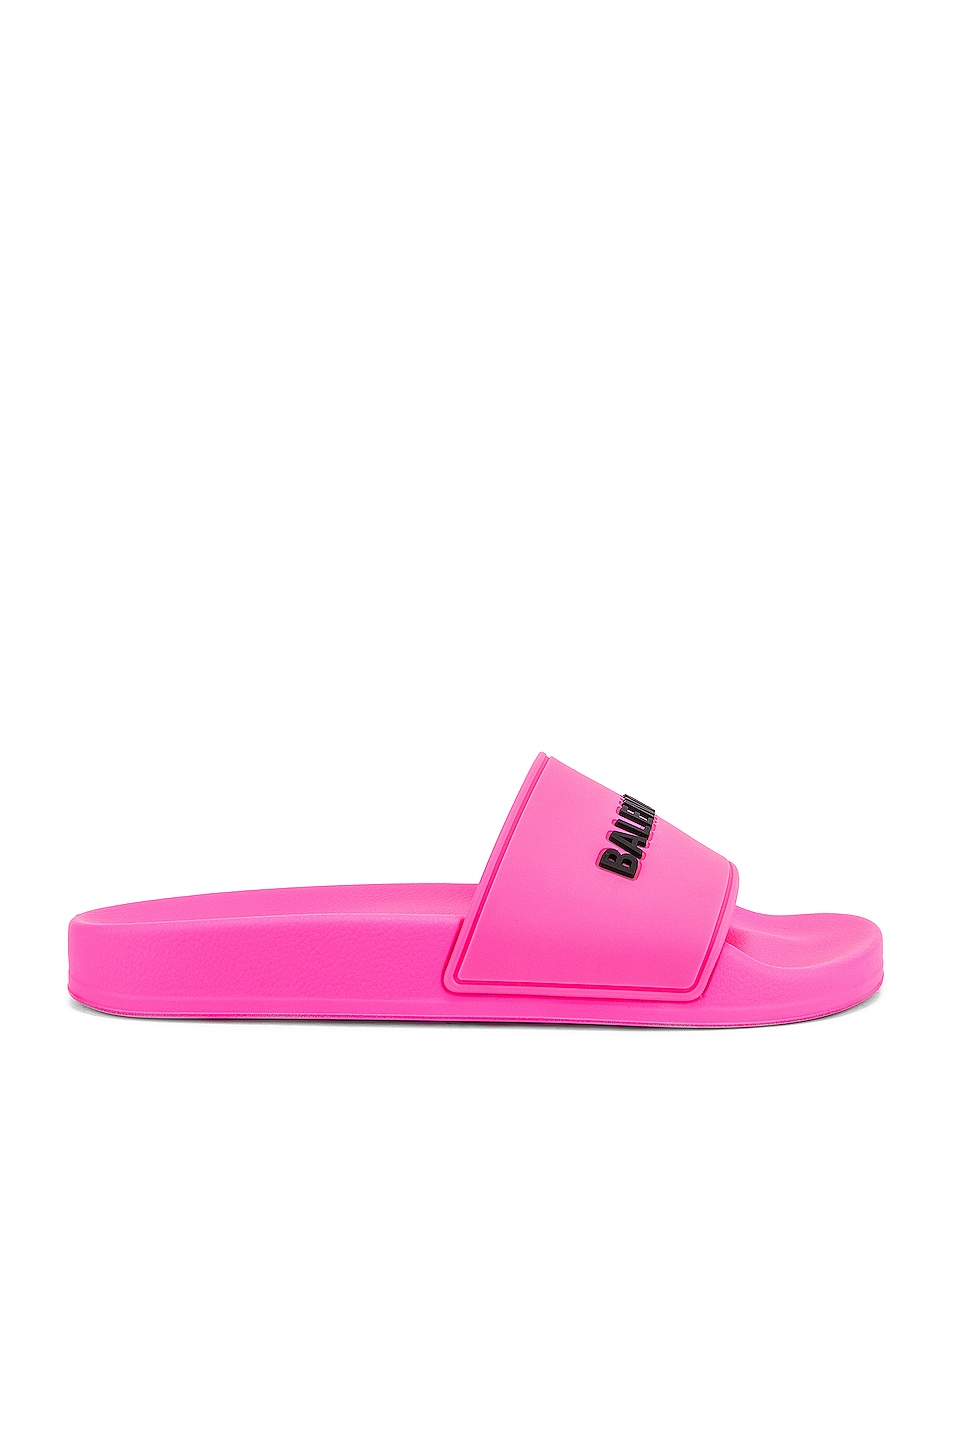 Image 2 of Balenciaga Rubber Logo Pool Slides in Neon Pink & Black